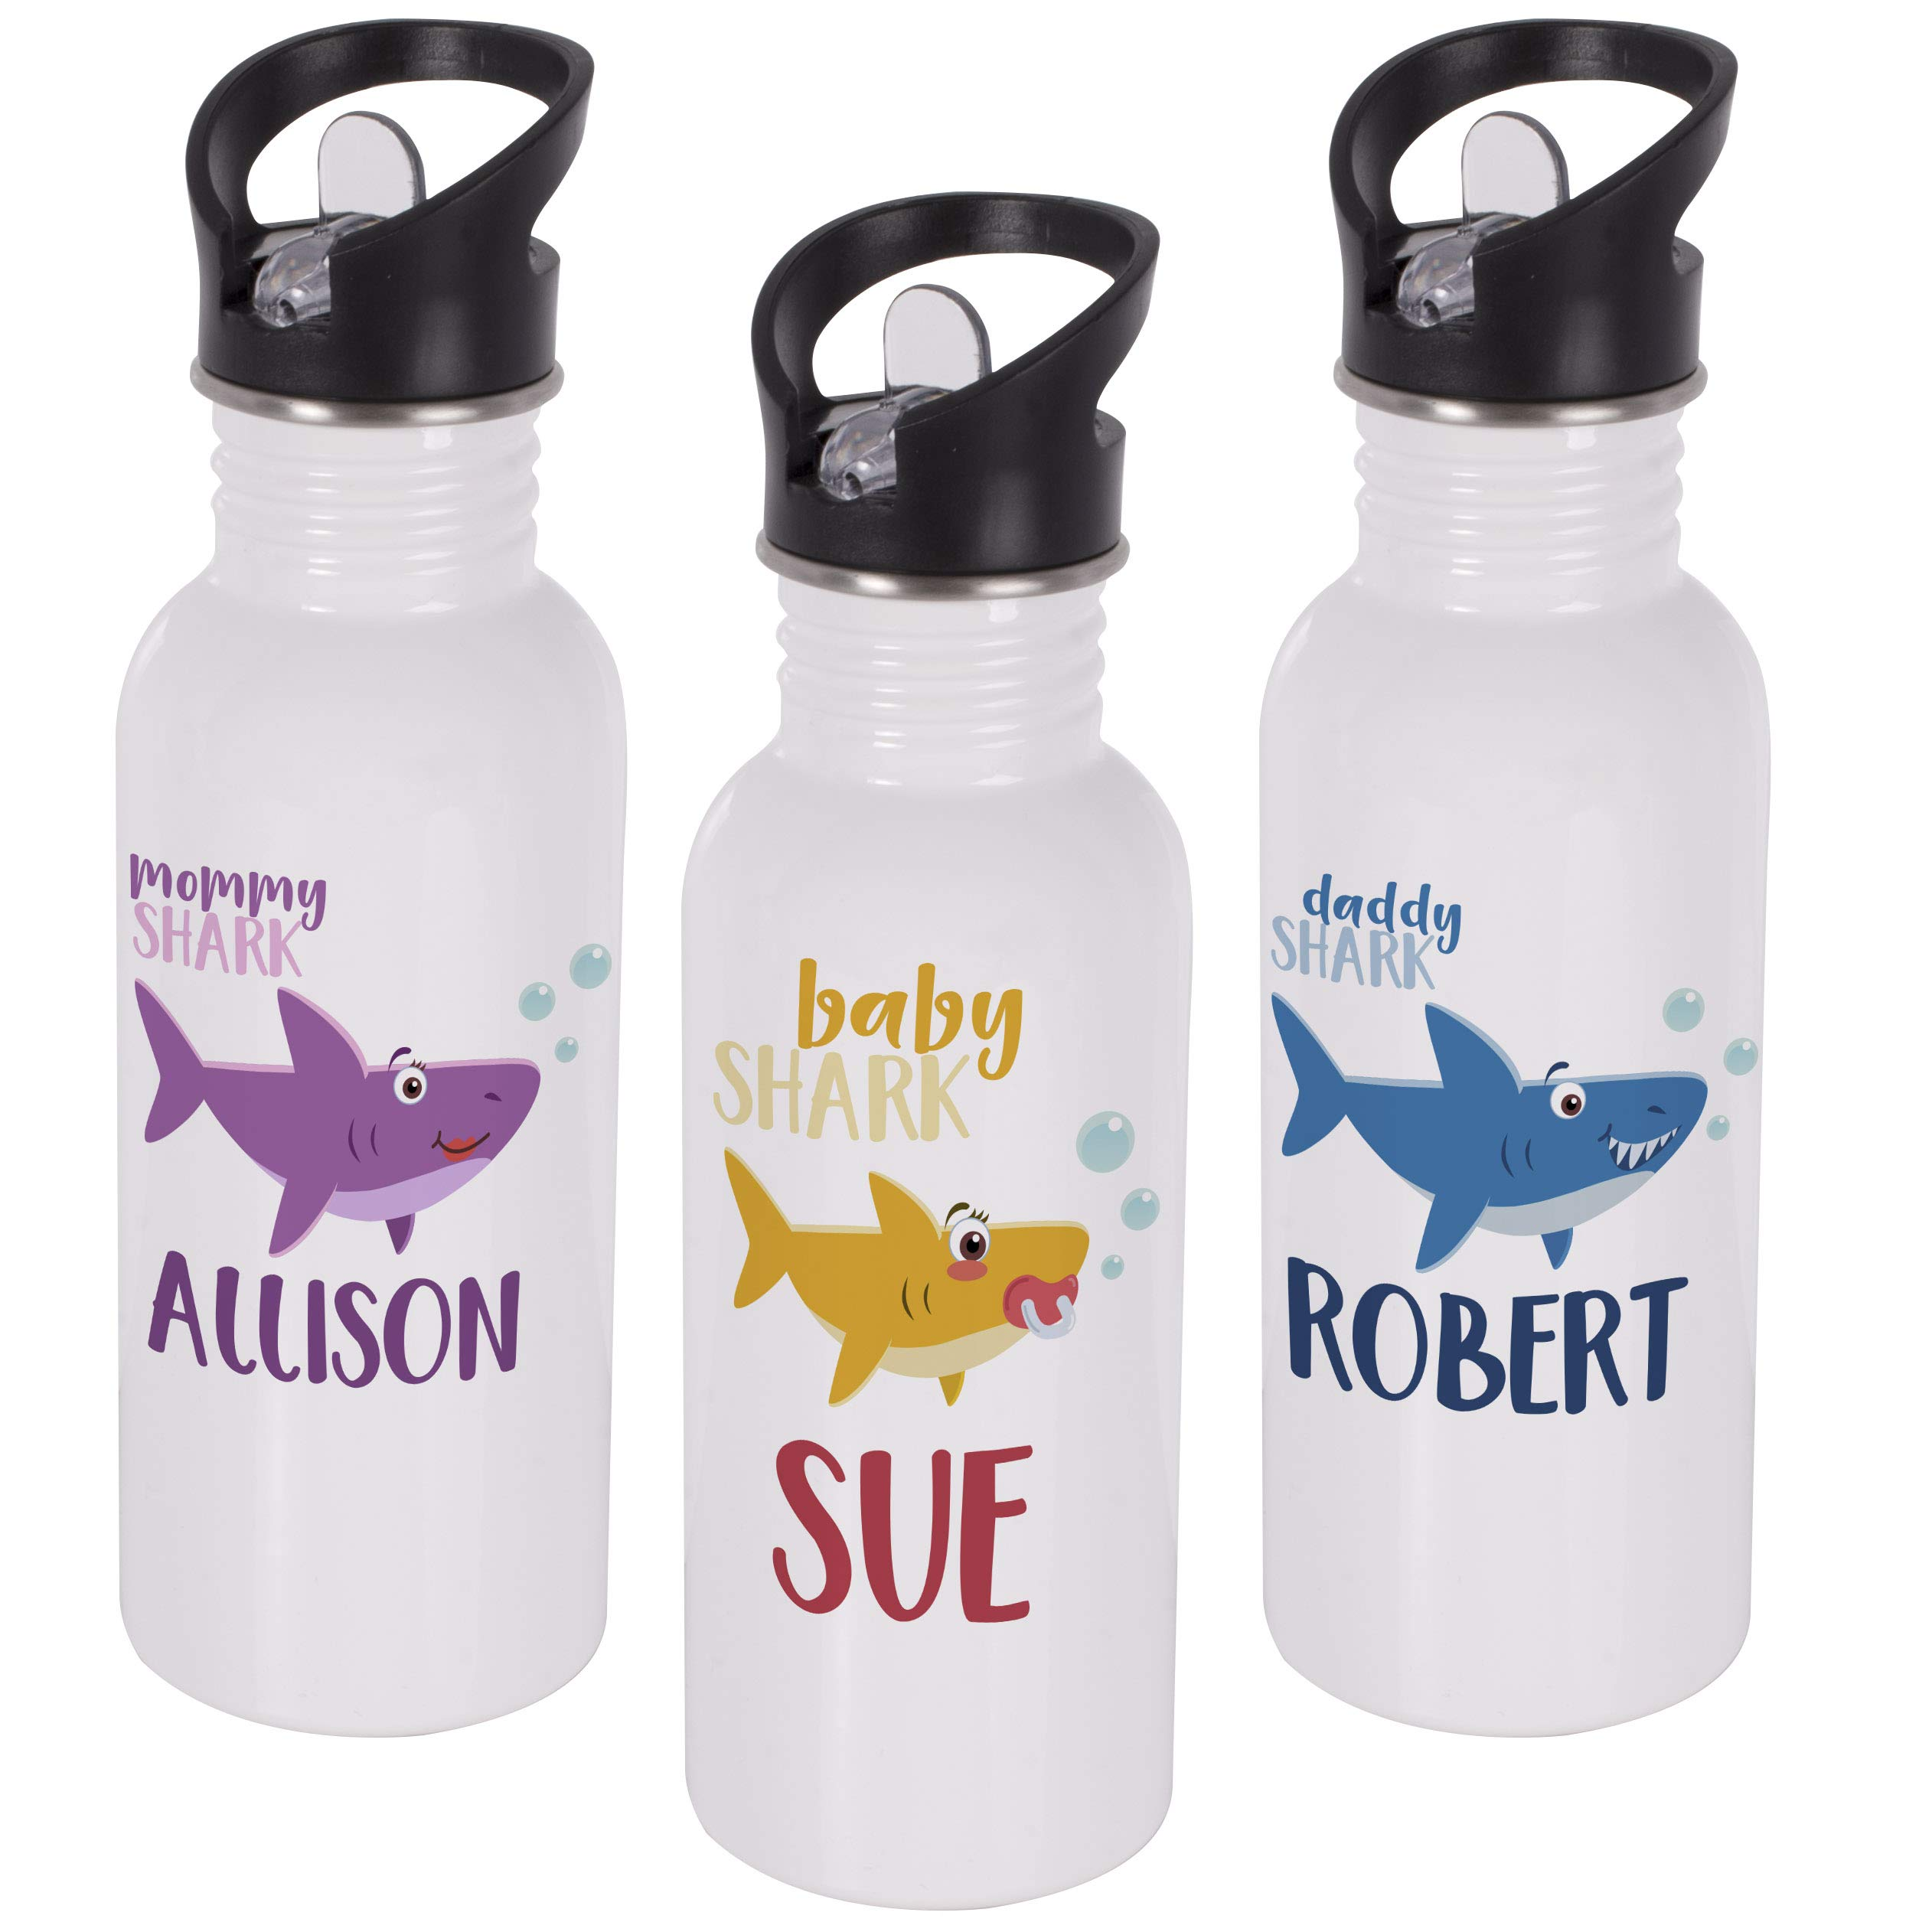 Personalized Gifts Shark Family Coffee Mug - 16oz Stainless Steel Sport Water Bottle Tumbler with Lid and Straw -Birthday Gifts, Mother's Day - Baby, Boy, Girl, Mommy, Daddy, Grandma, Grandpa Sharks by USA Custom Gifts (Image #3)